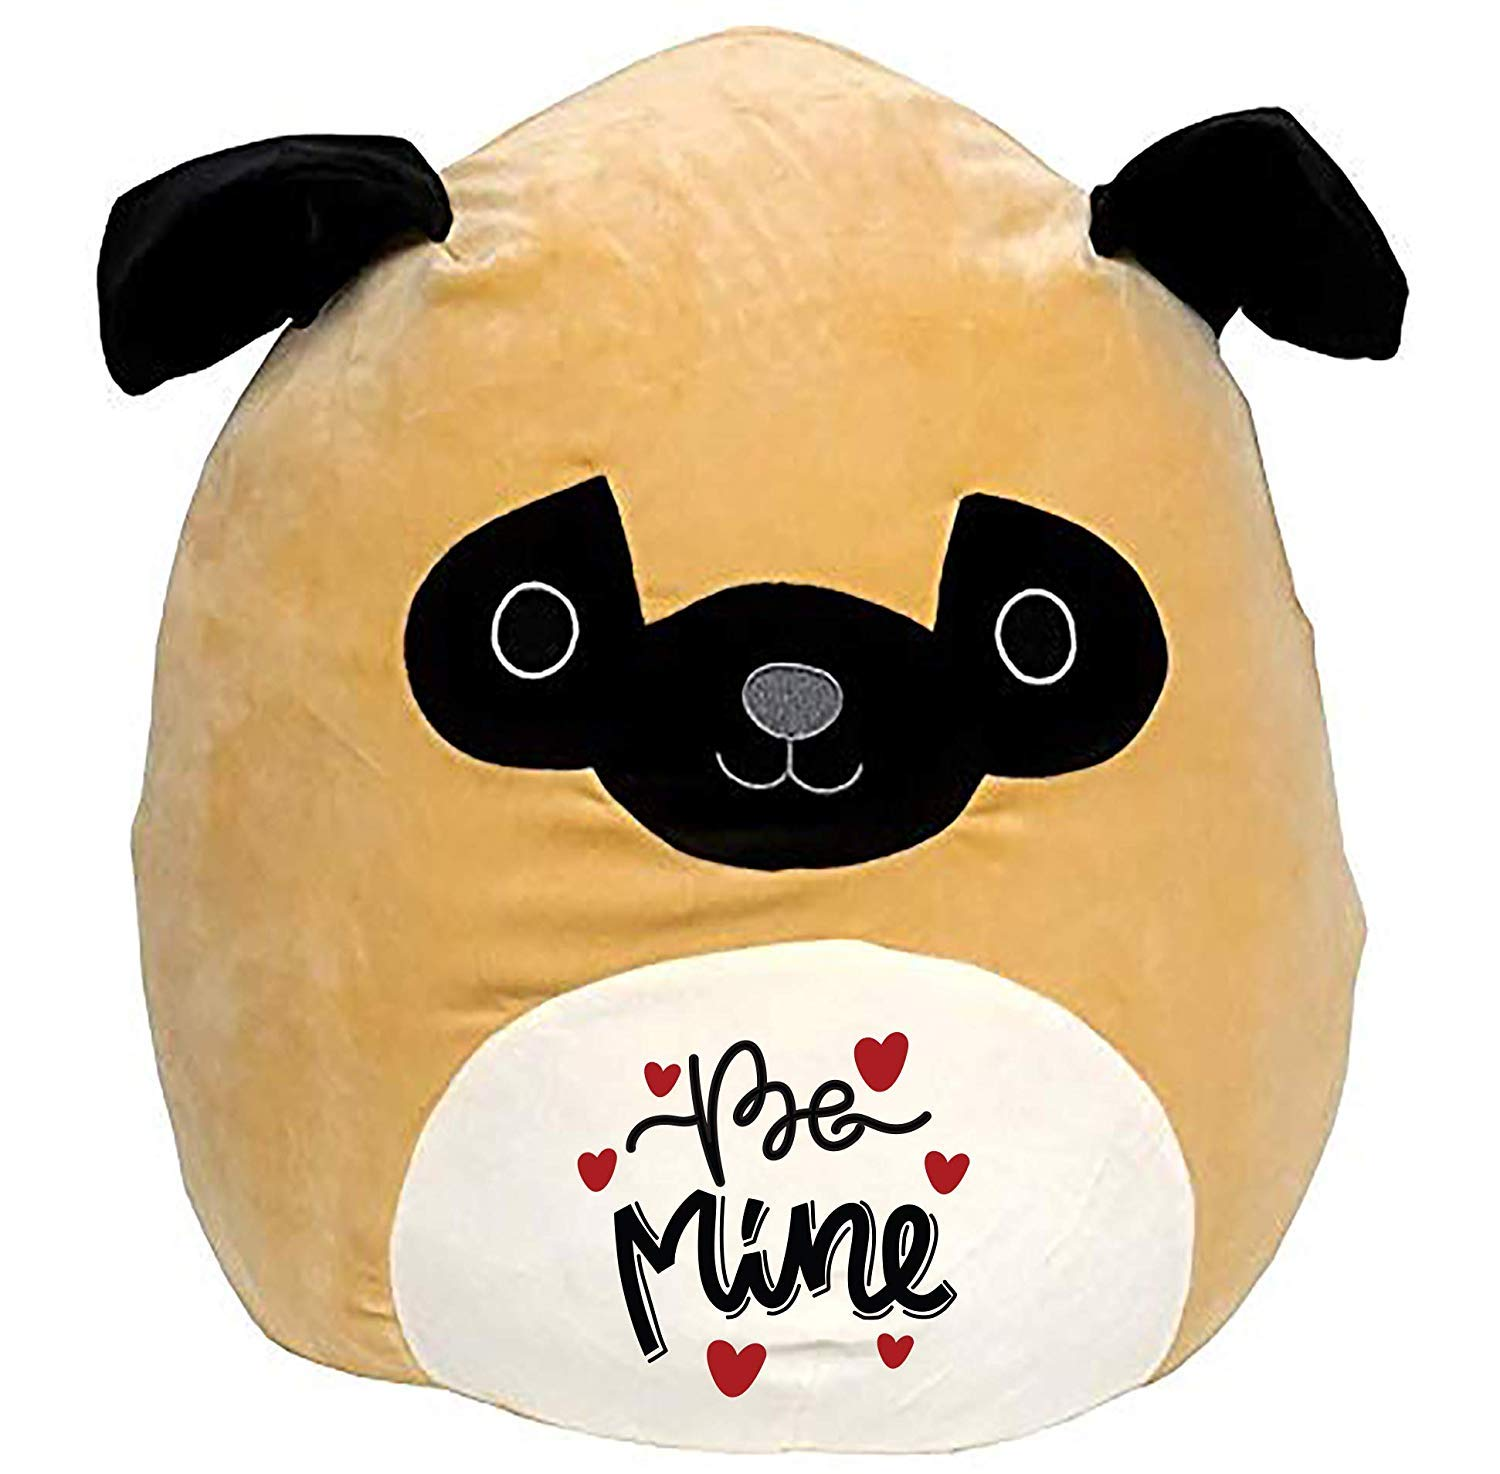 Squishmallow Limited Edition BE Mine Great for Anniversary or Proposal Original Kellytoy Happy Lovers Edition 13 Stuffed Animal Pet Pillow